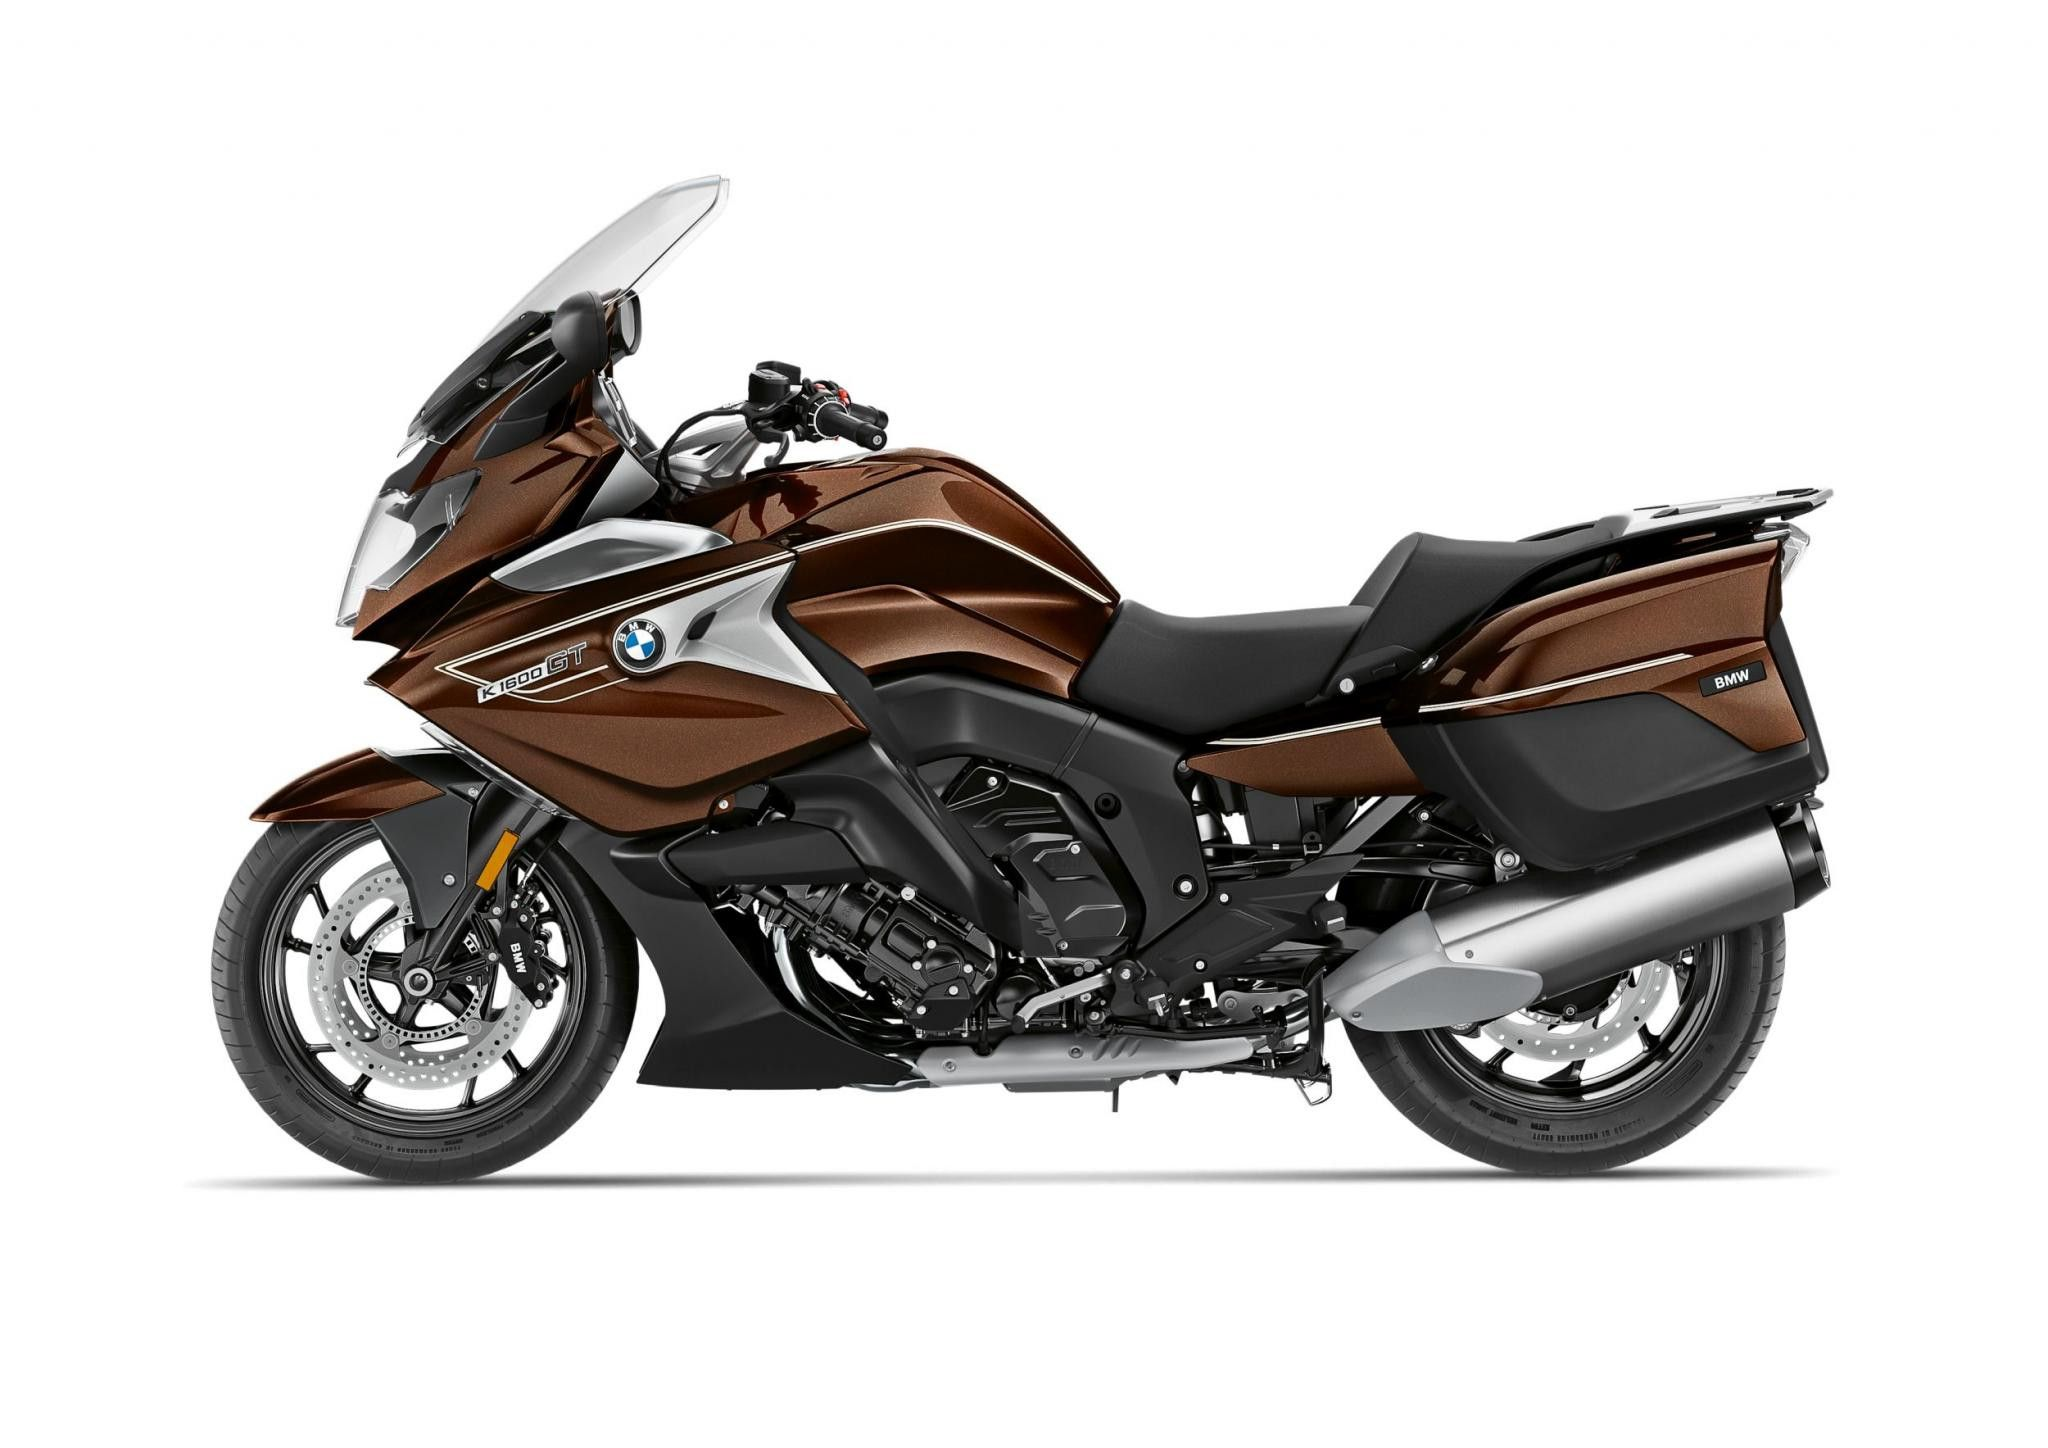 Bmw K1600gt 2020 Overview For Bmw K1600gt 2020 New Review Di 2020